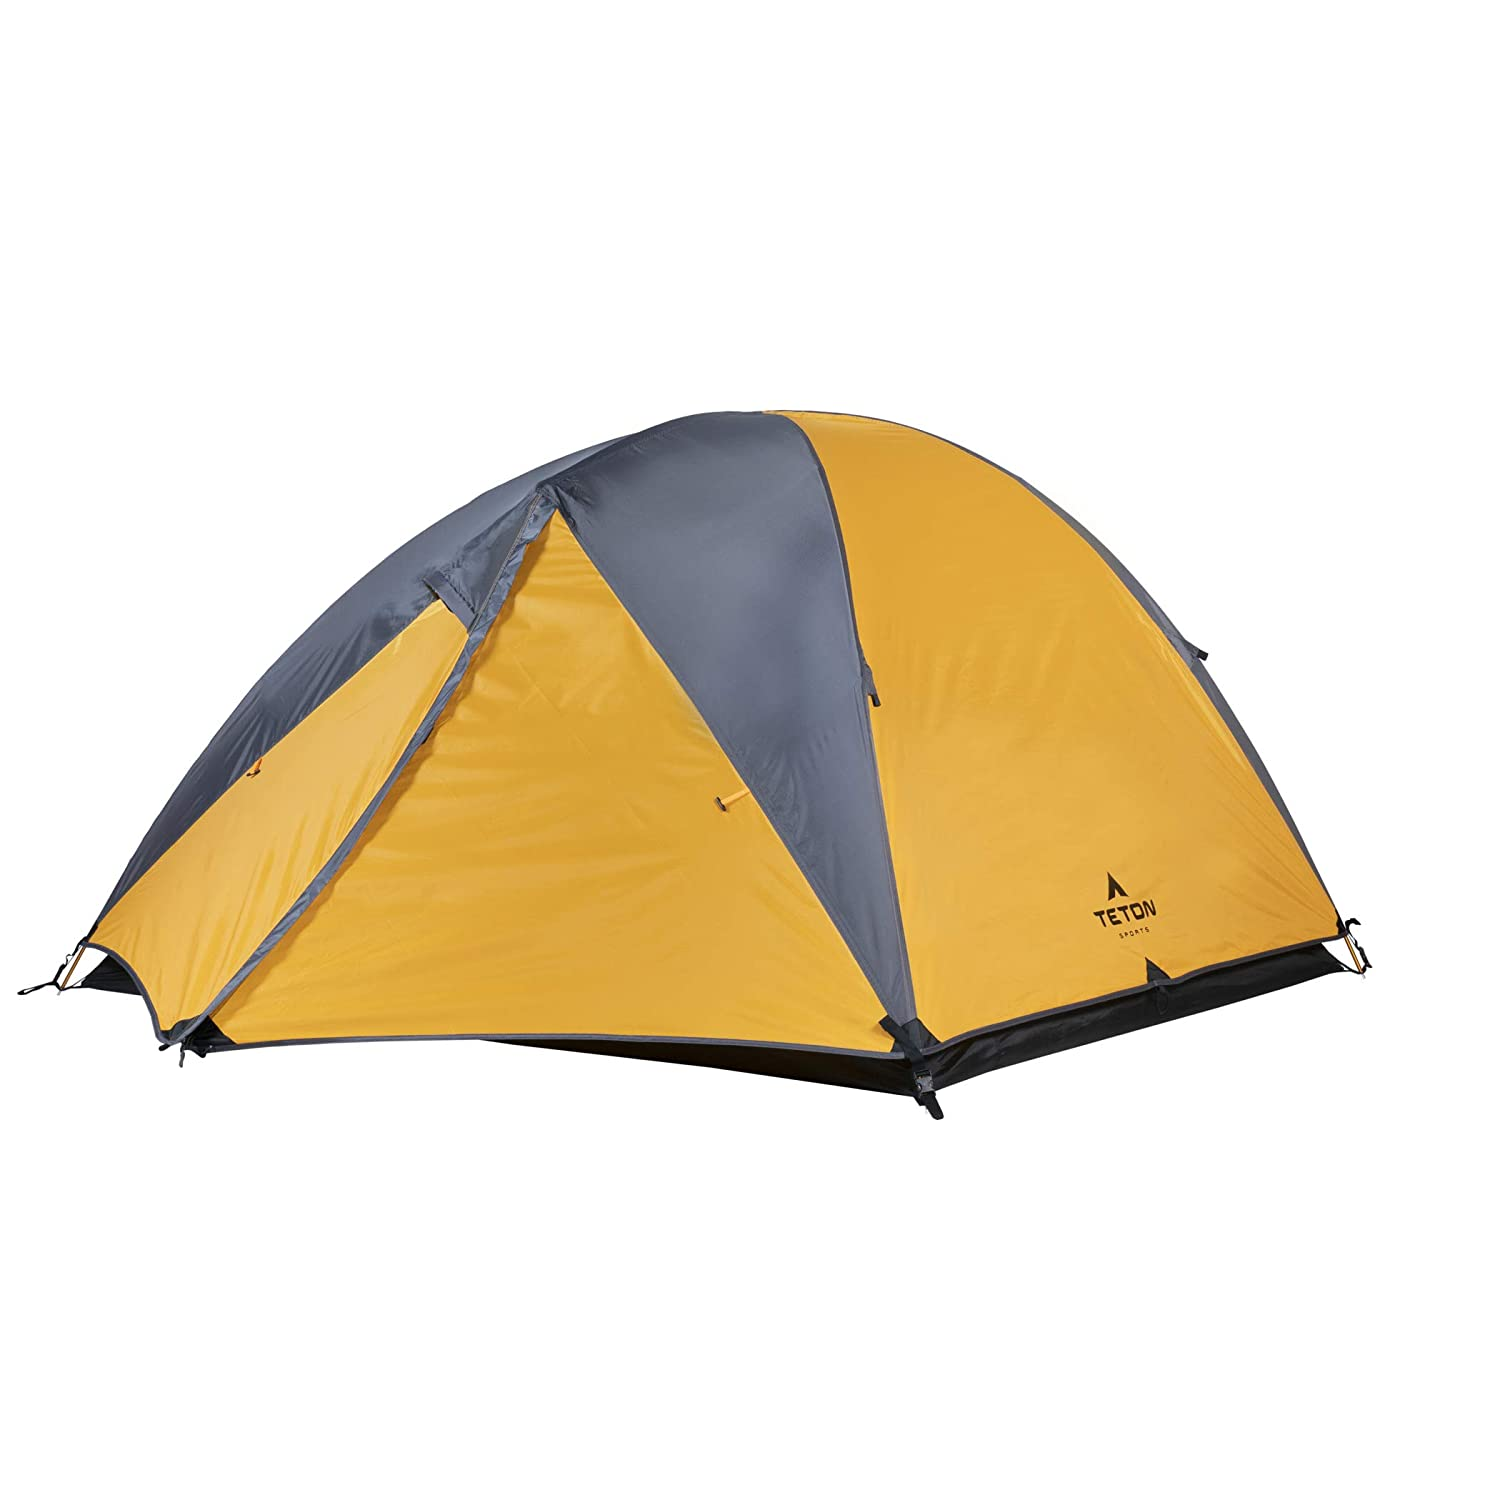 Mountain Ultra Tent; 1-4 Person Backpacking Dome Tent